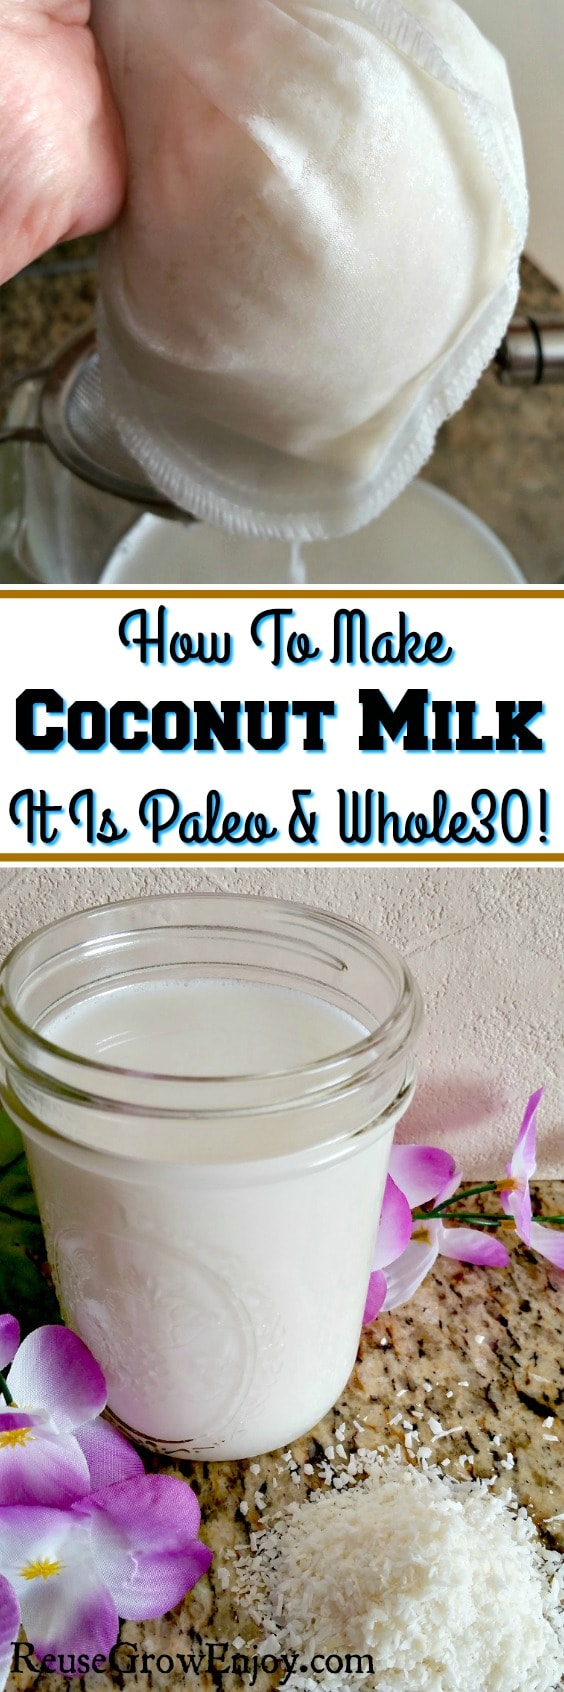 Can't find a coconut milk that works with your diet? Everything you find have extra stuff added? I will show you How To Make Coconut Milk! Works with both Whole30 and Paleo